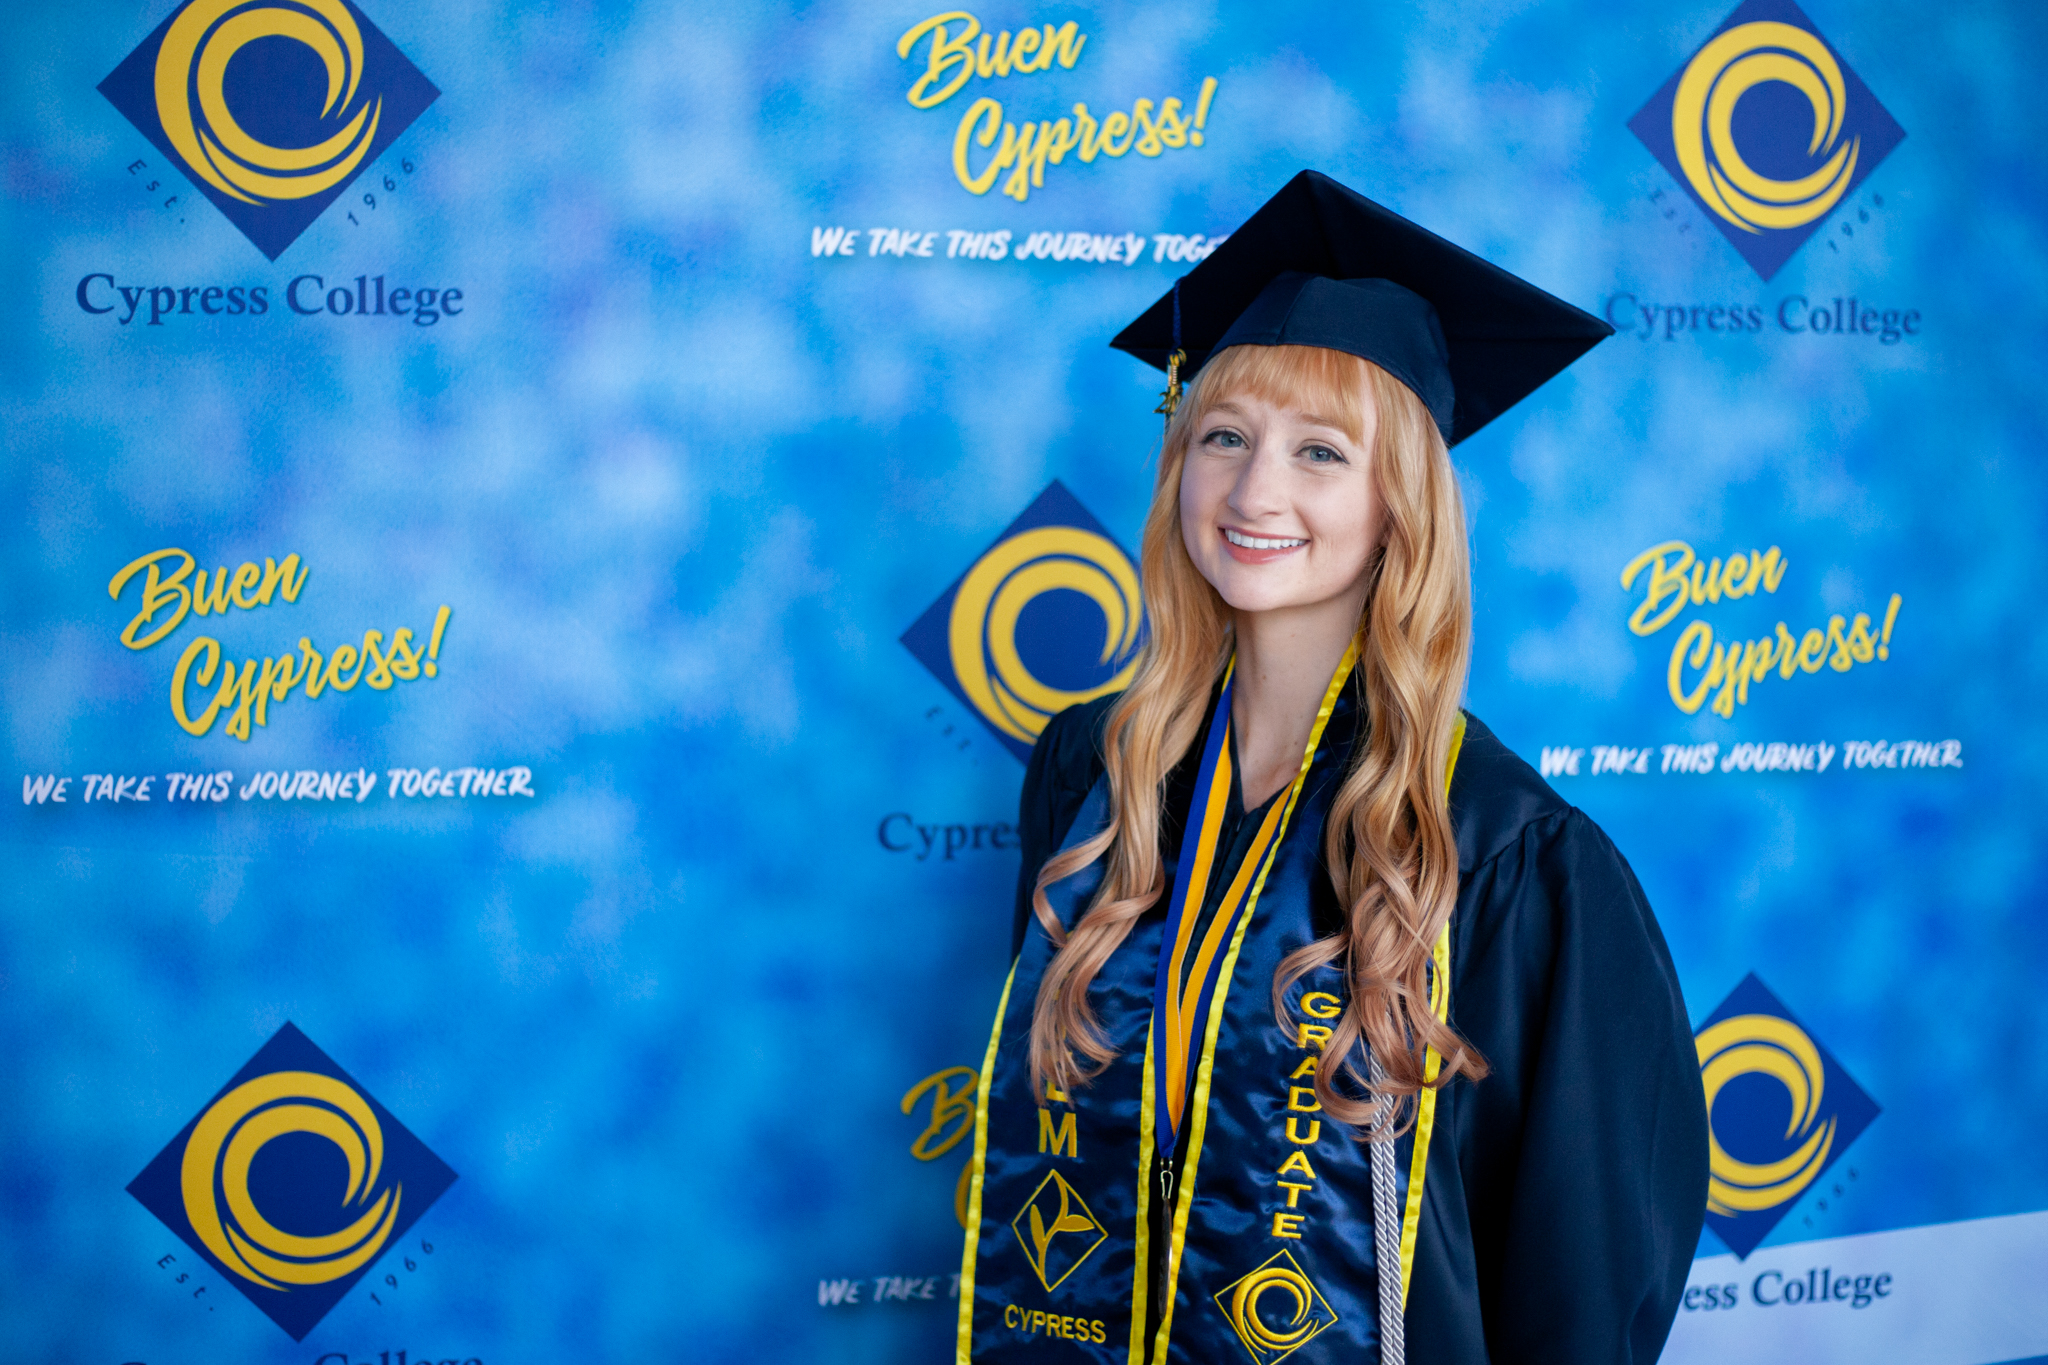 SEM student Lia Thompson poses in front of blue backdrop.